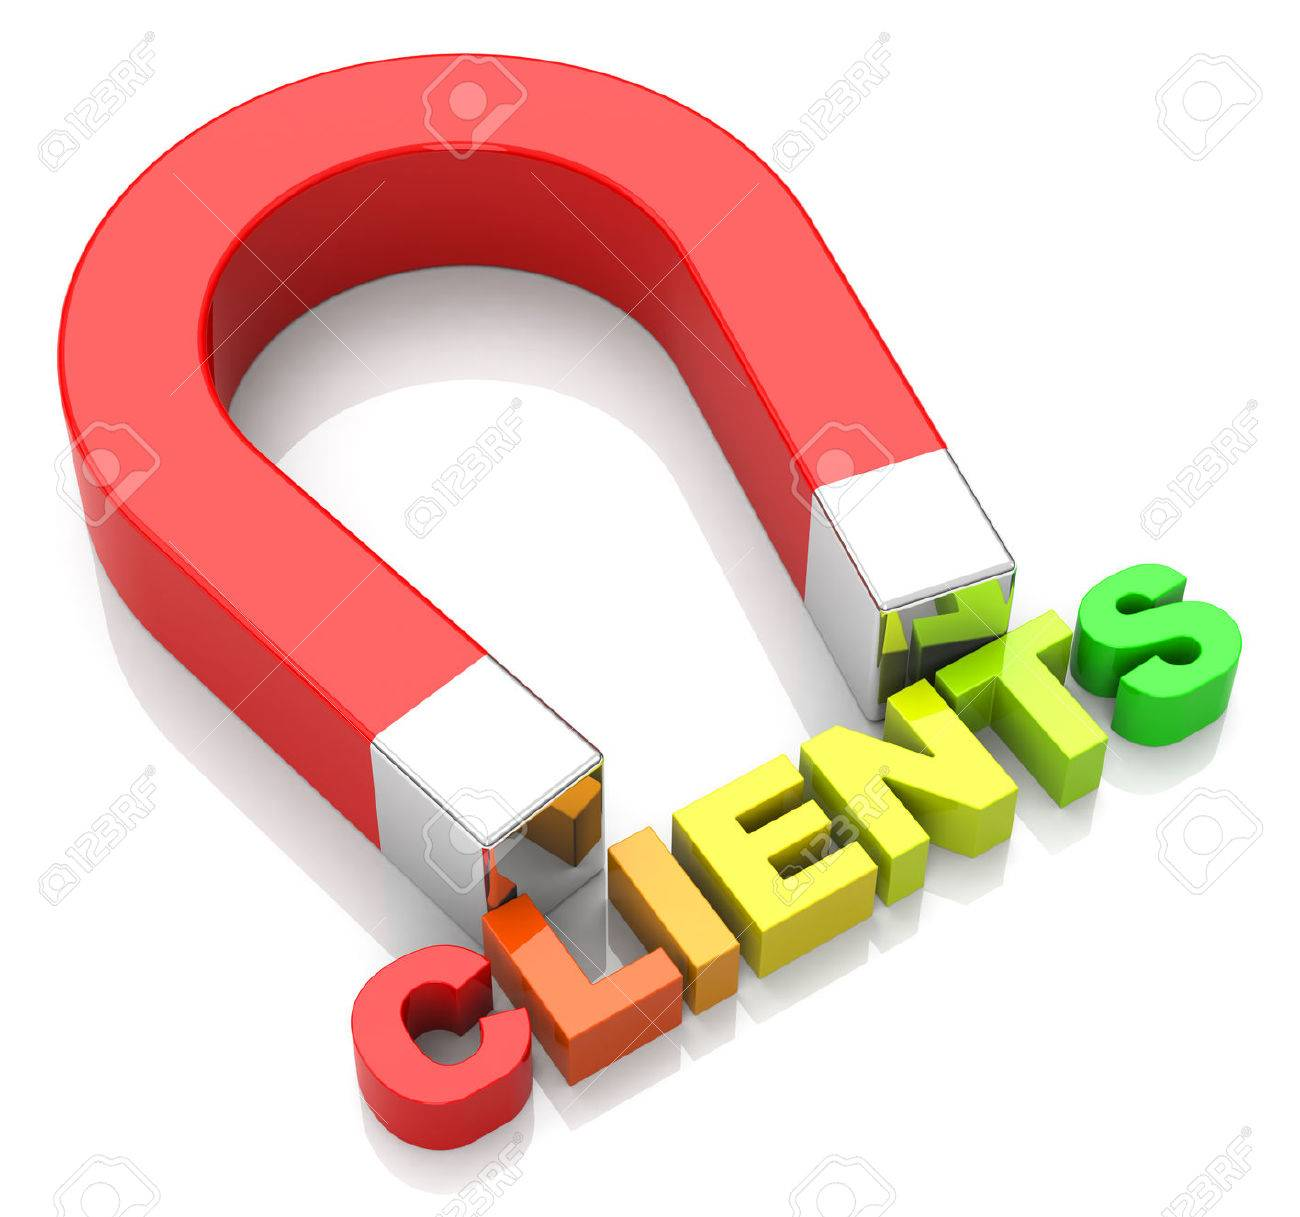 clients attraction by a magnet - 32561698